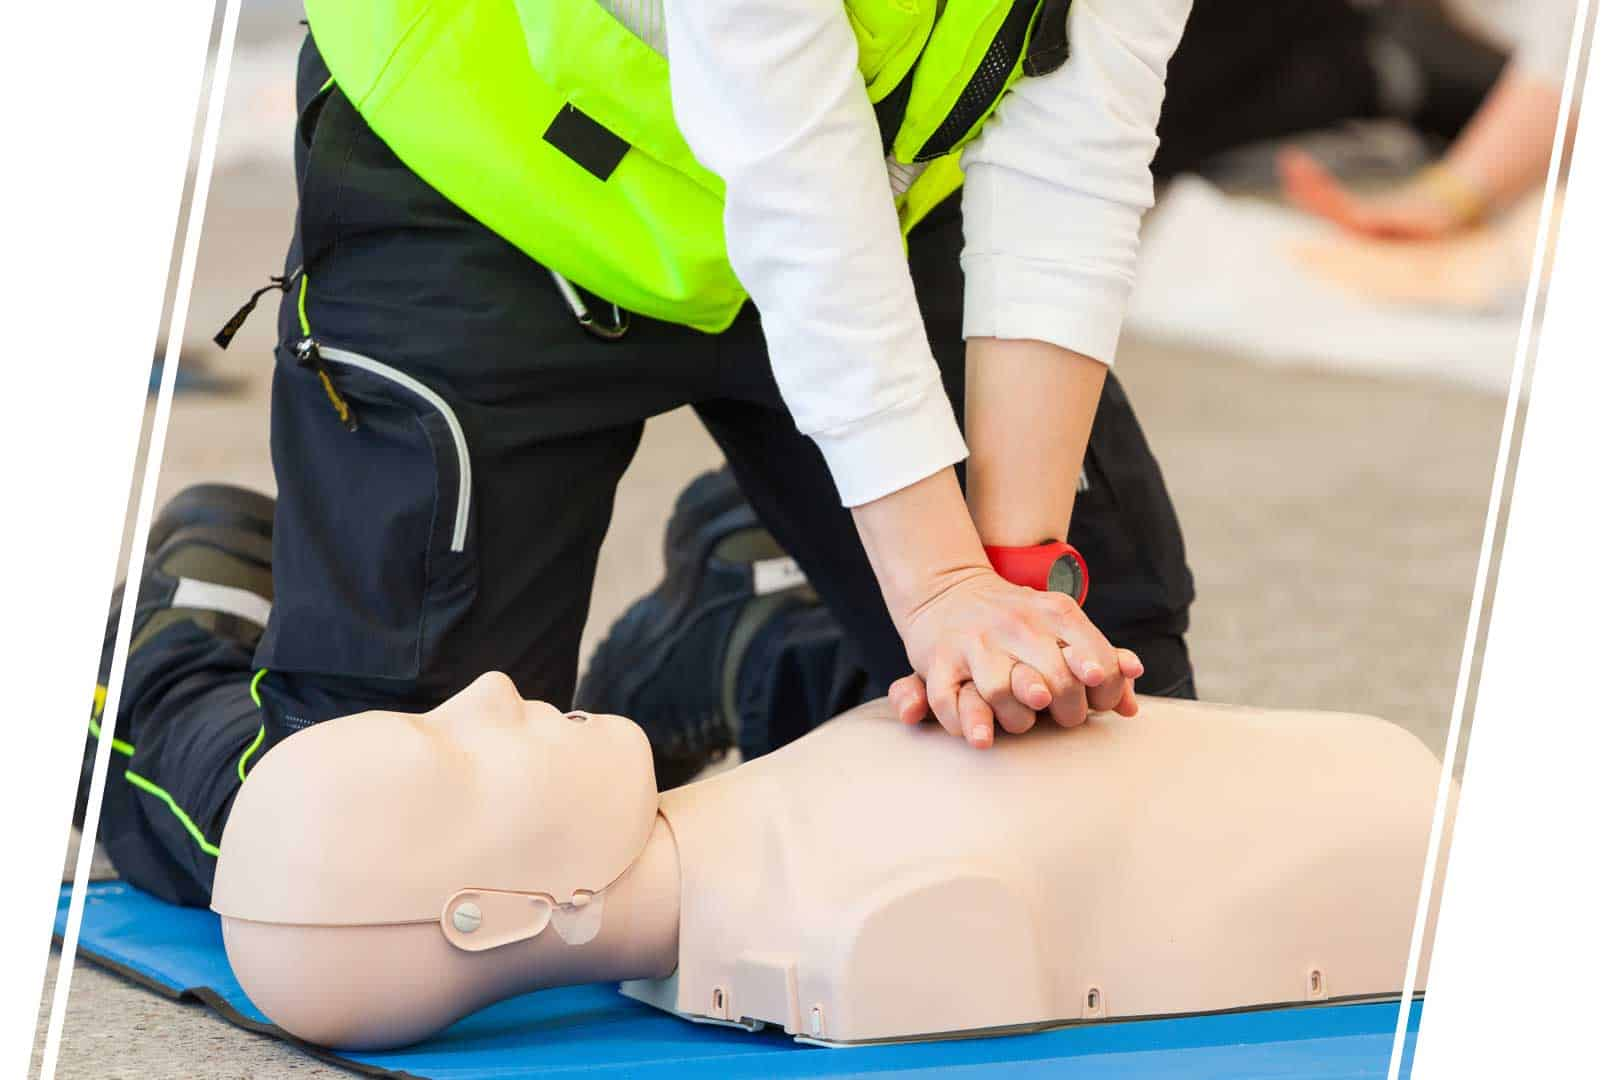 Hands performing CPR on a test dummy